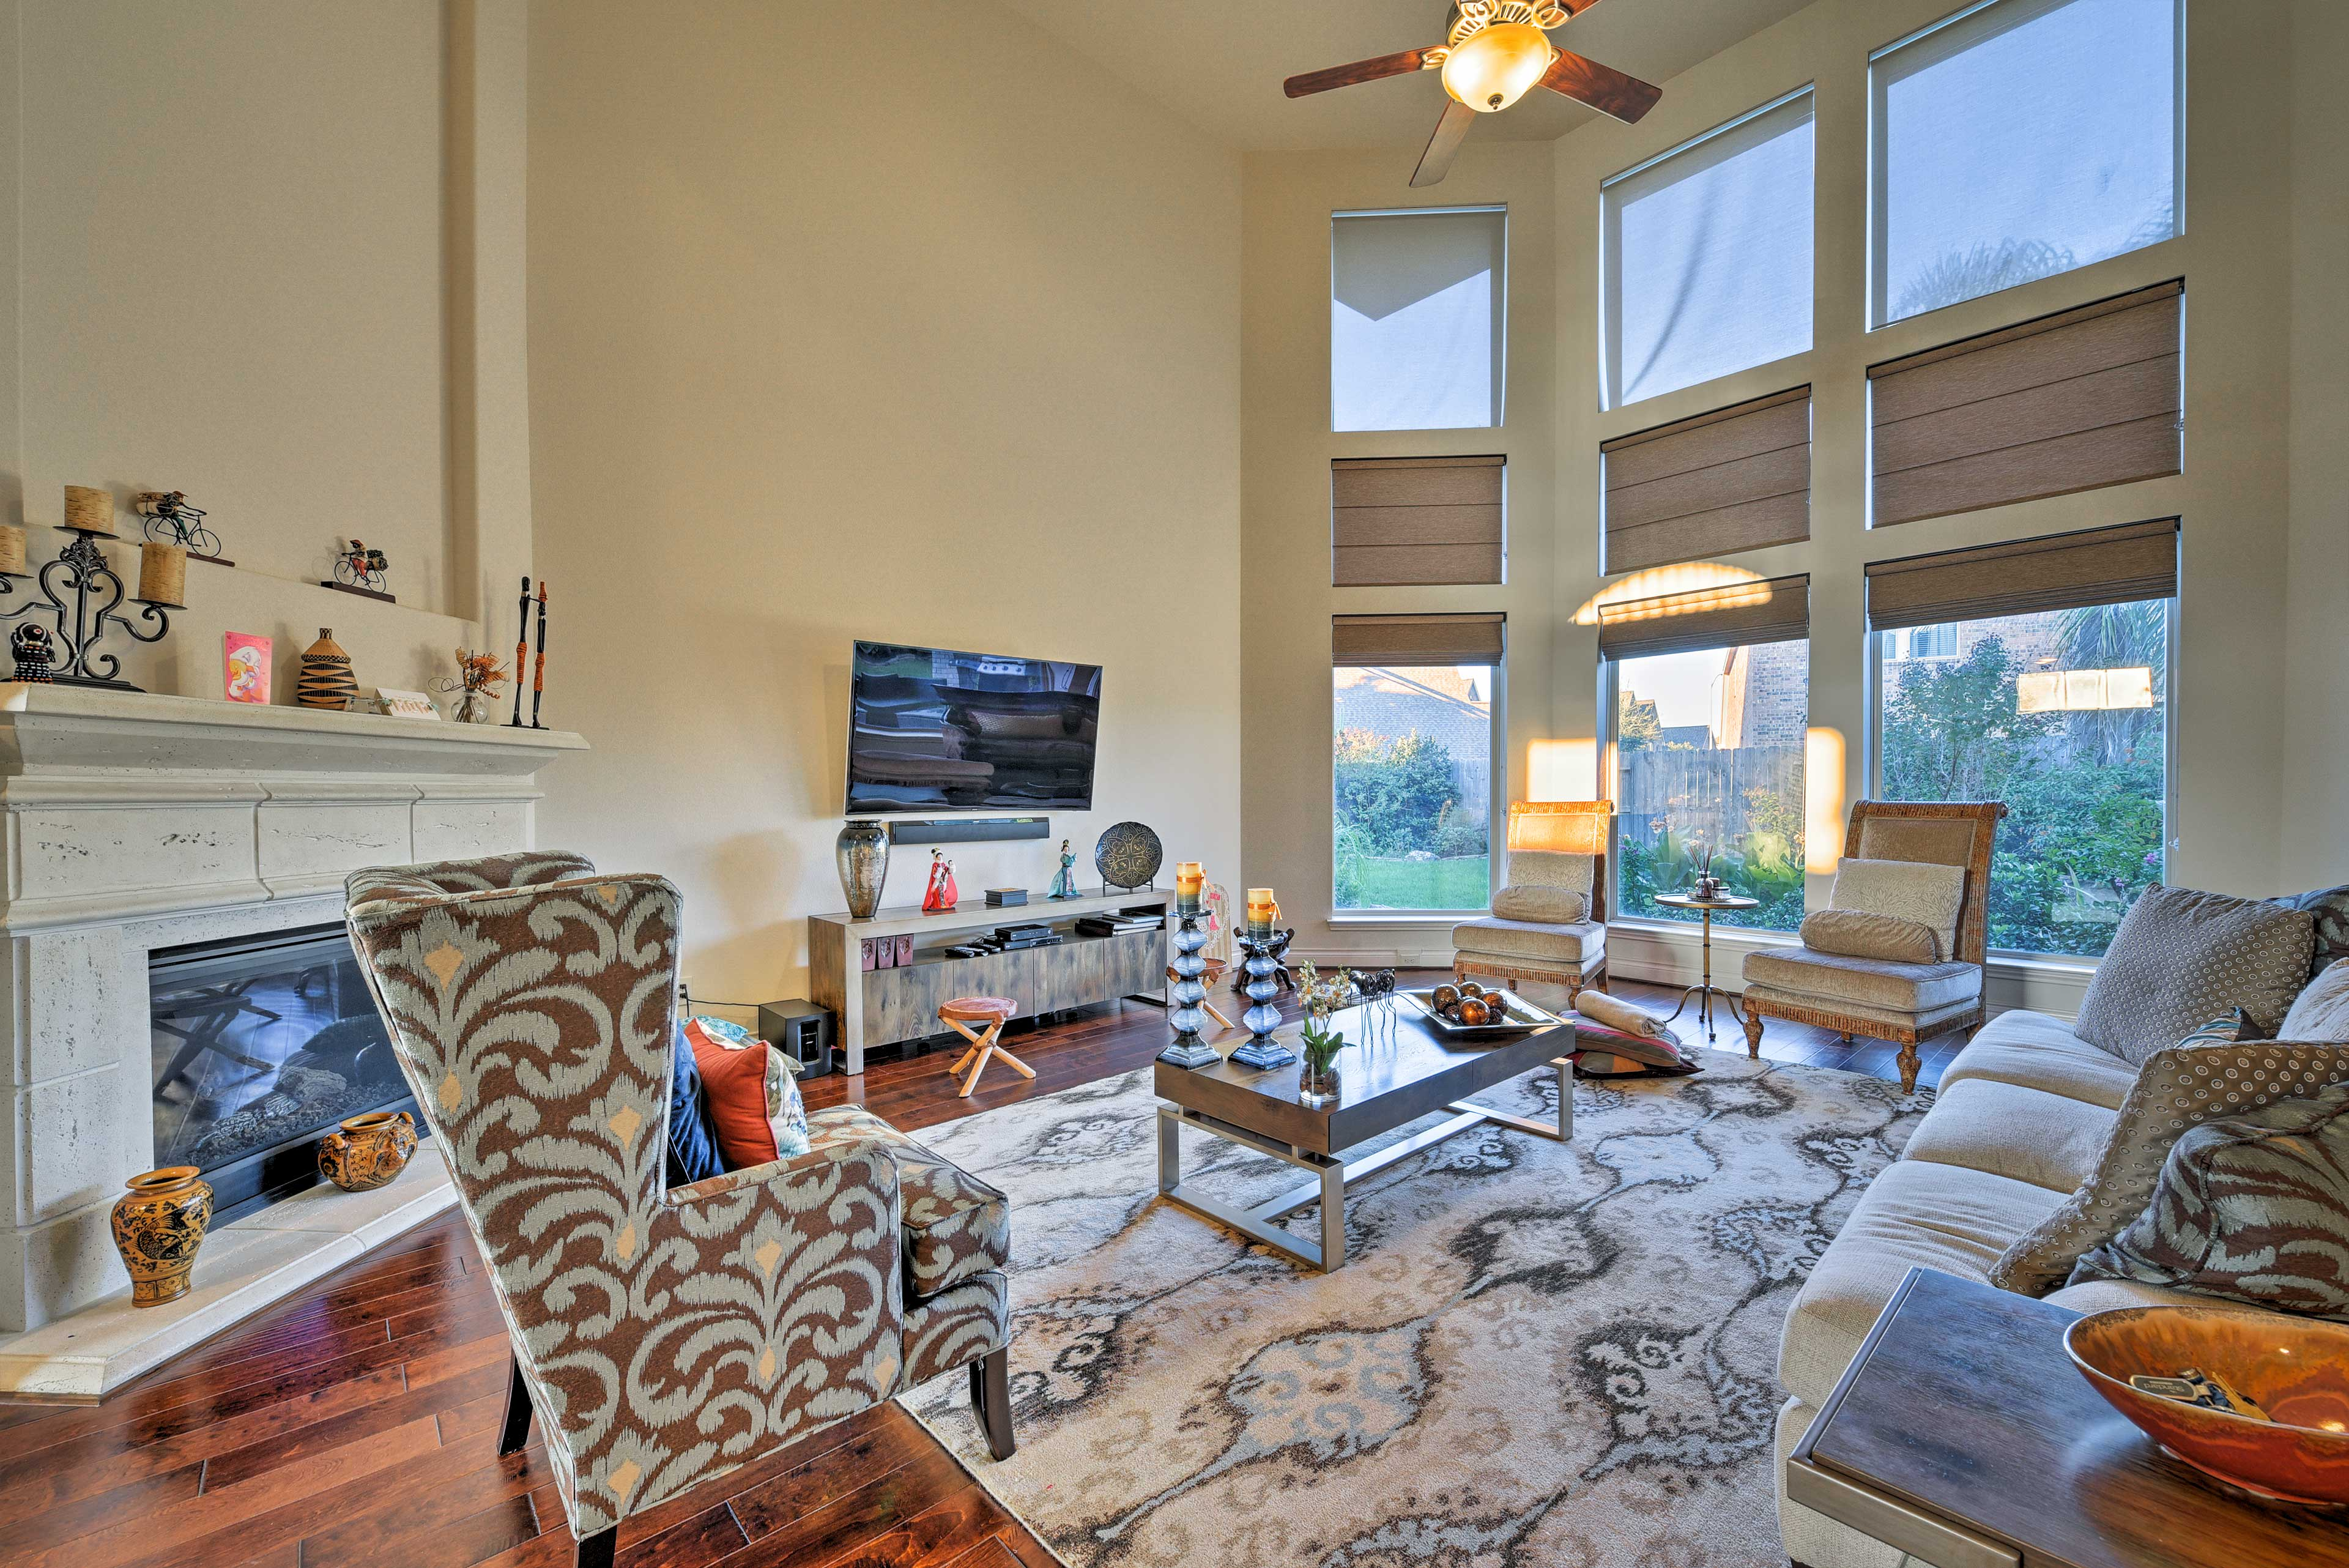 You'll love returning to the beautiful living room after a long day.